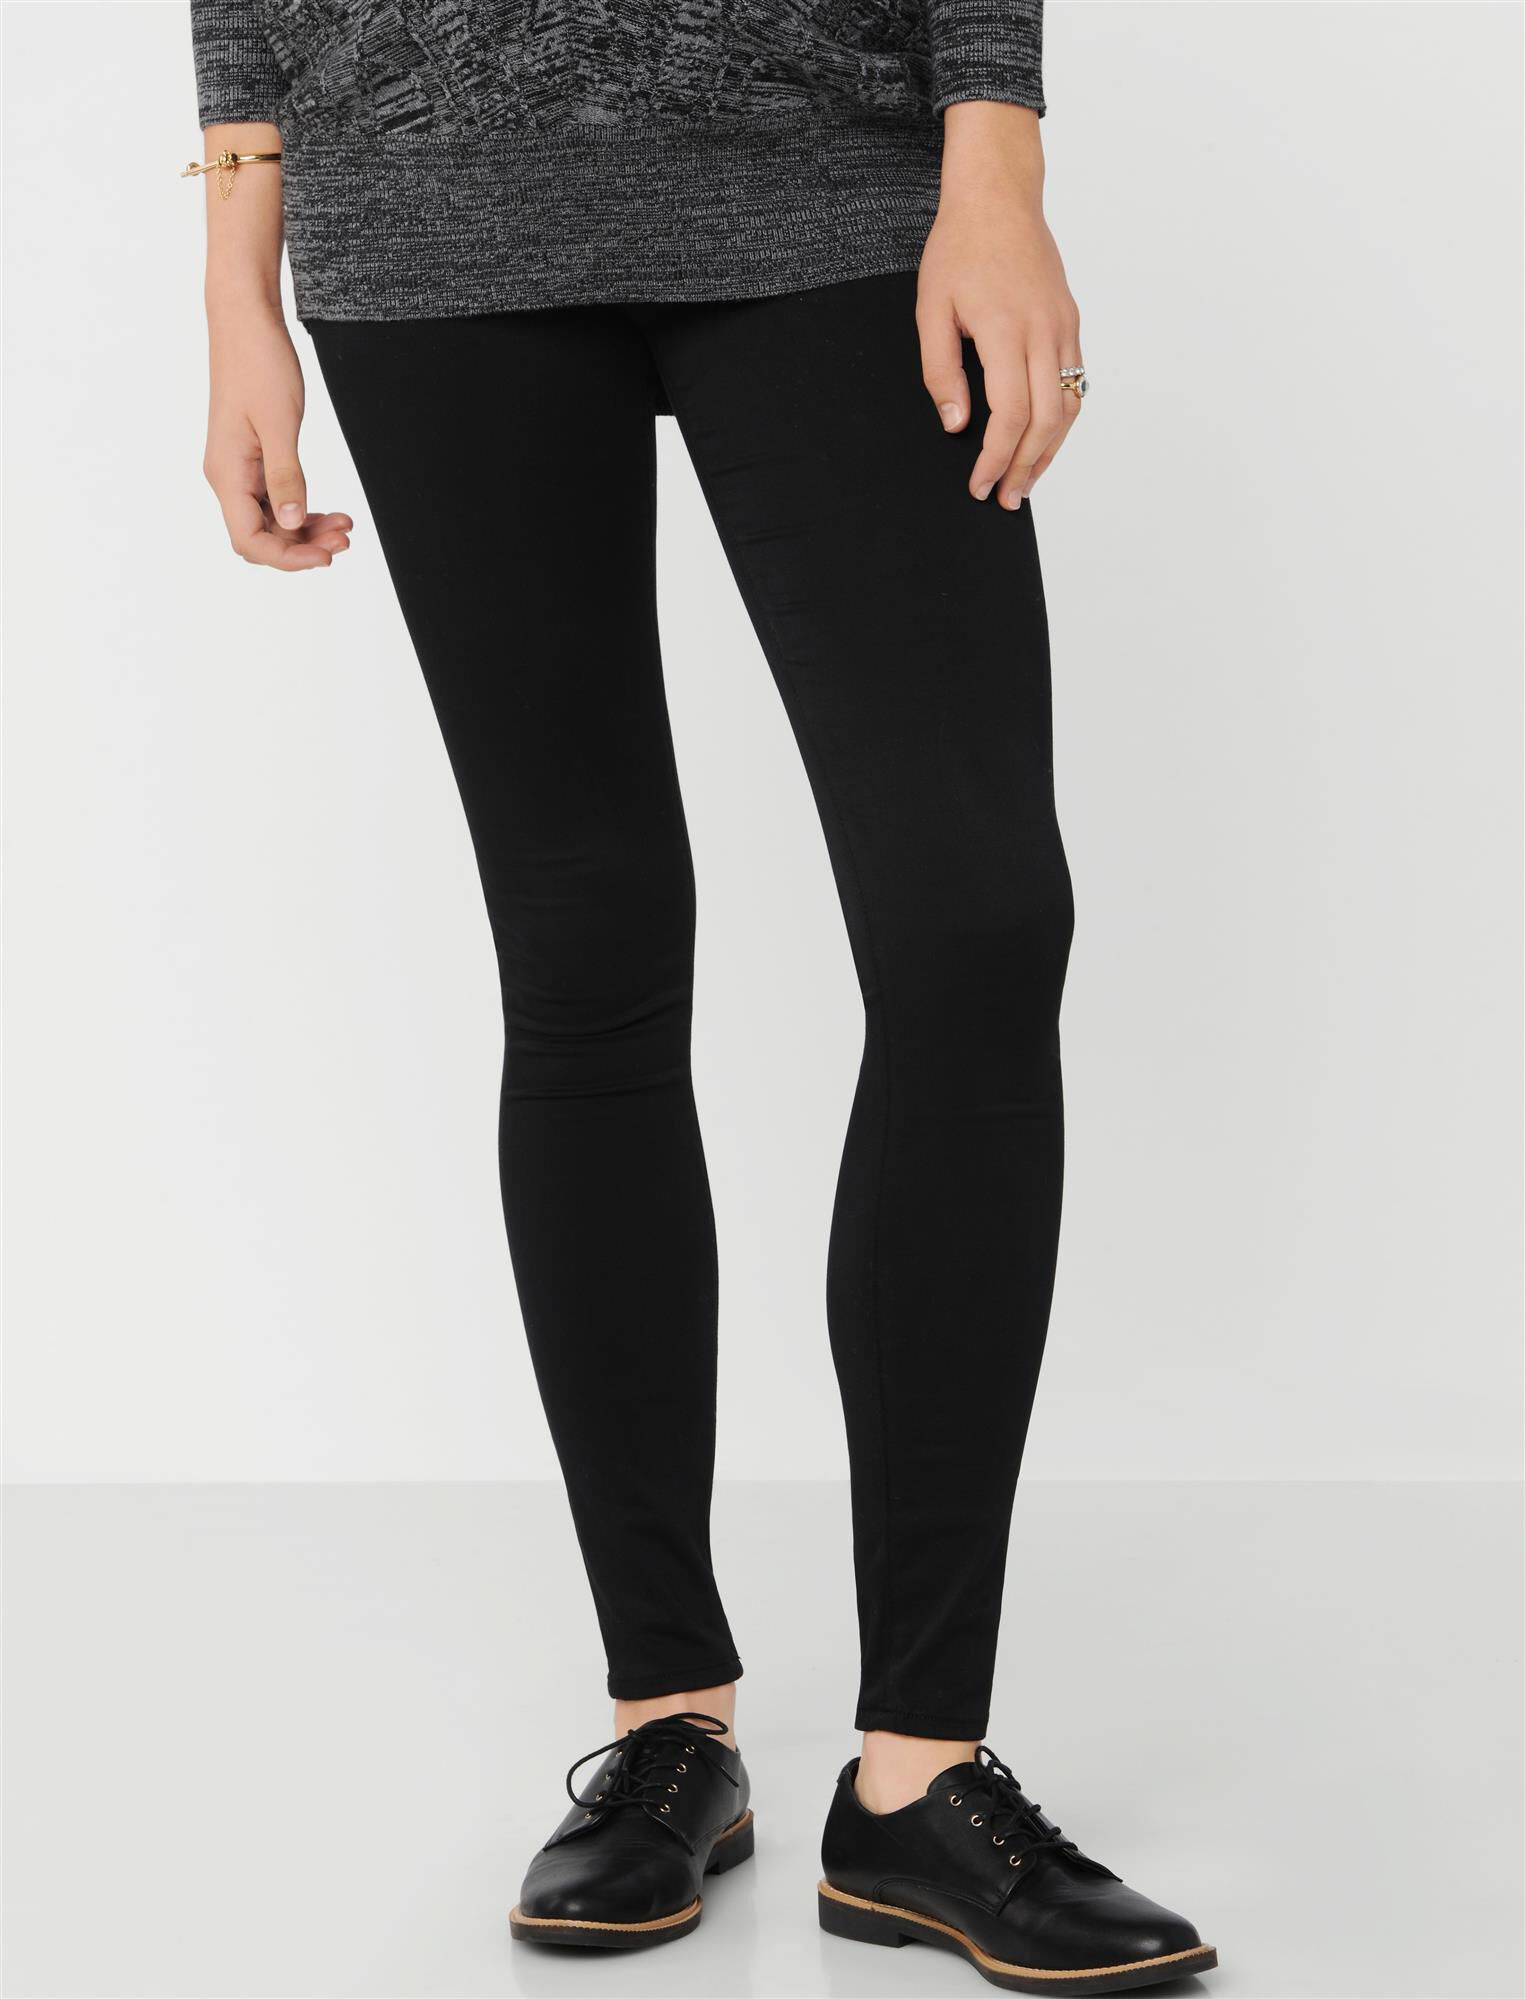 AG Secret Fit Belly Sateen Maternity Leggings